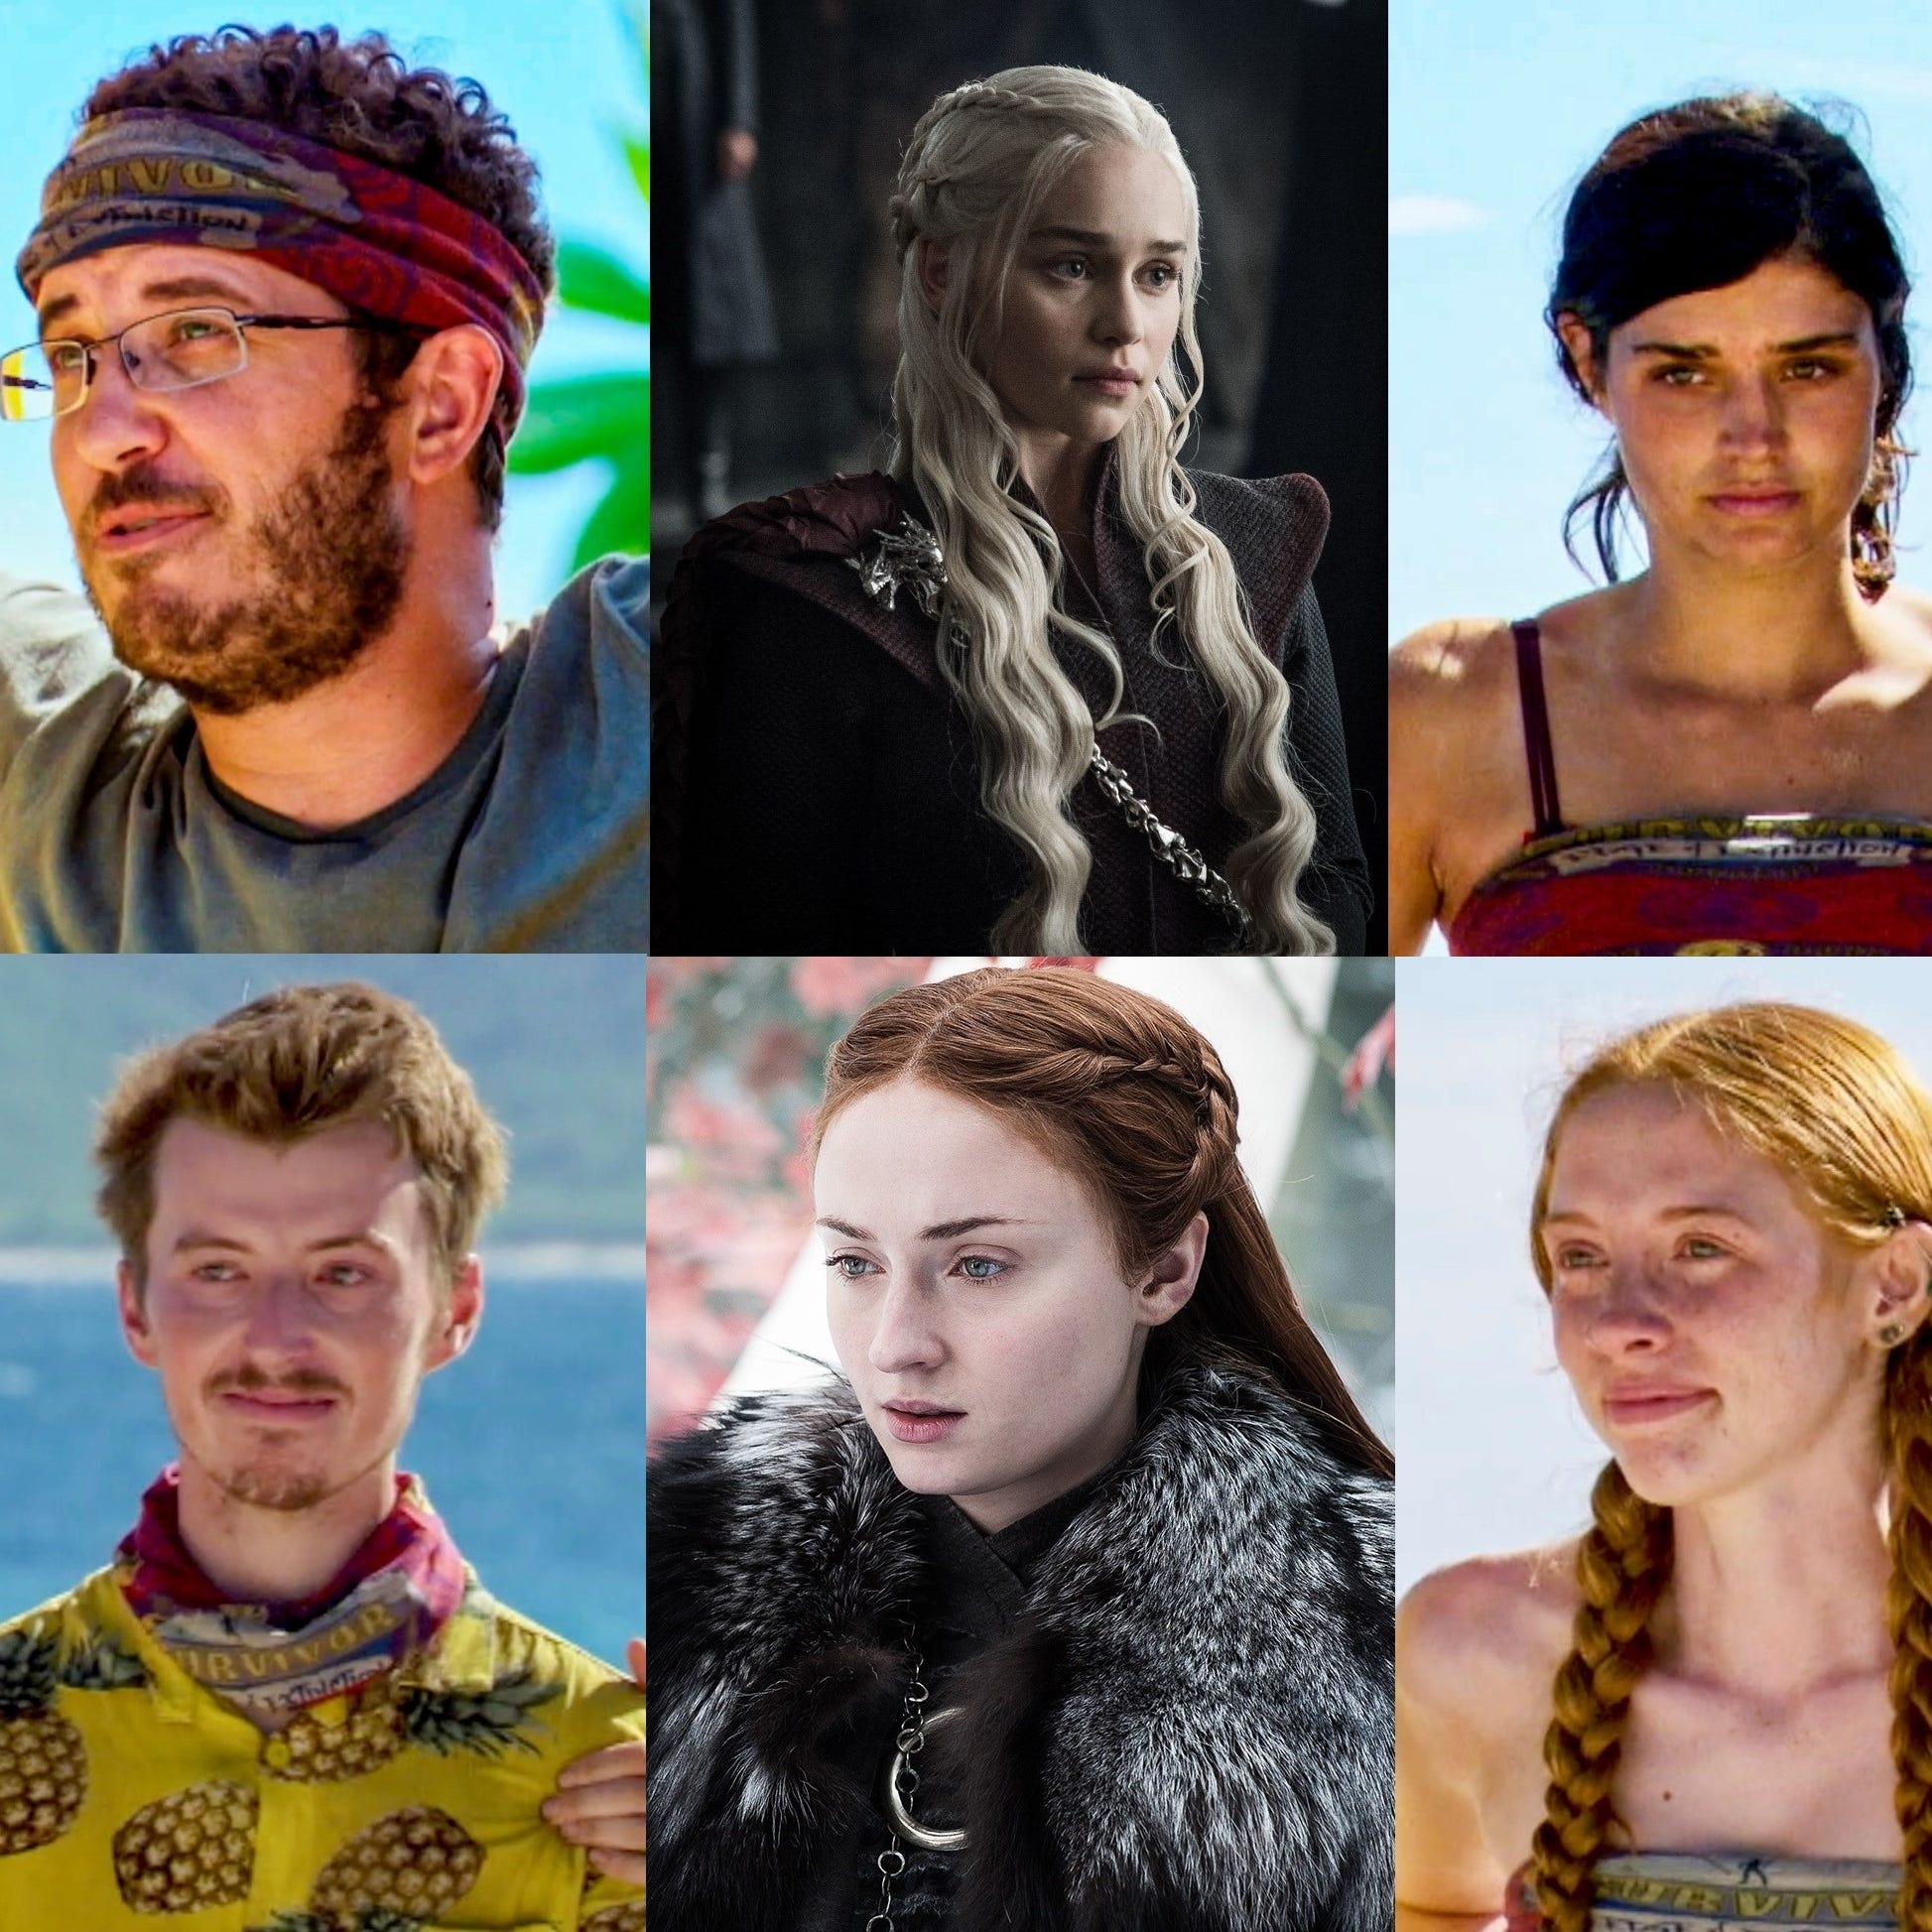 'Game of Thrones' meets 'Survivor' in eerily parallel worlds